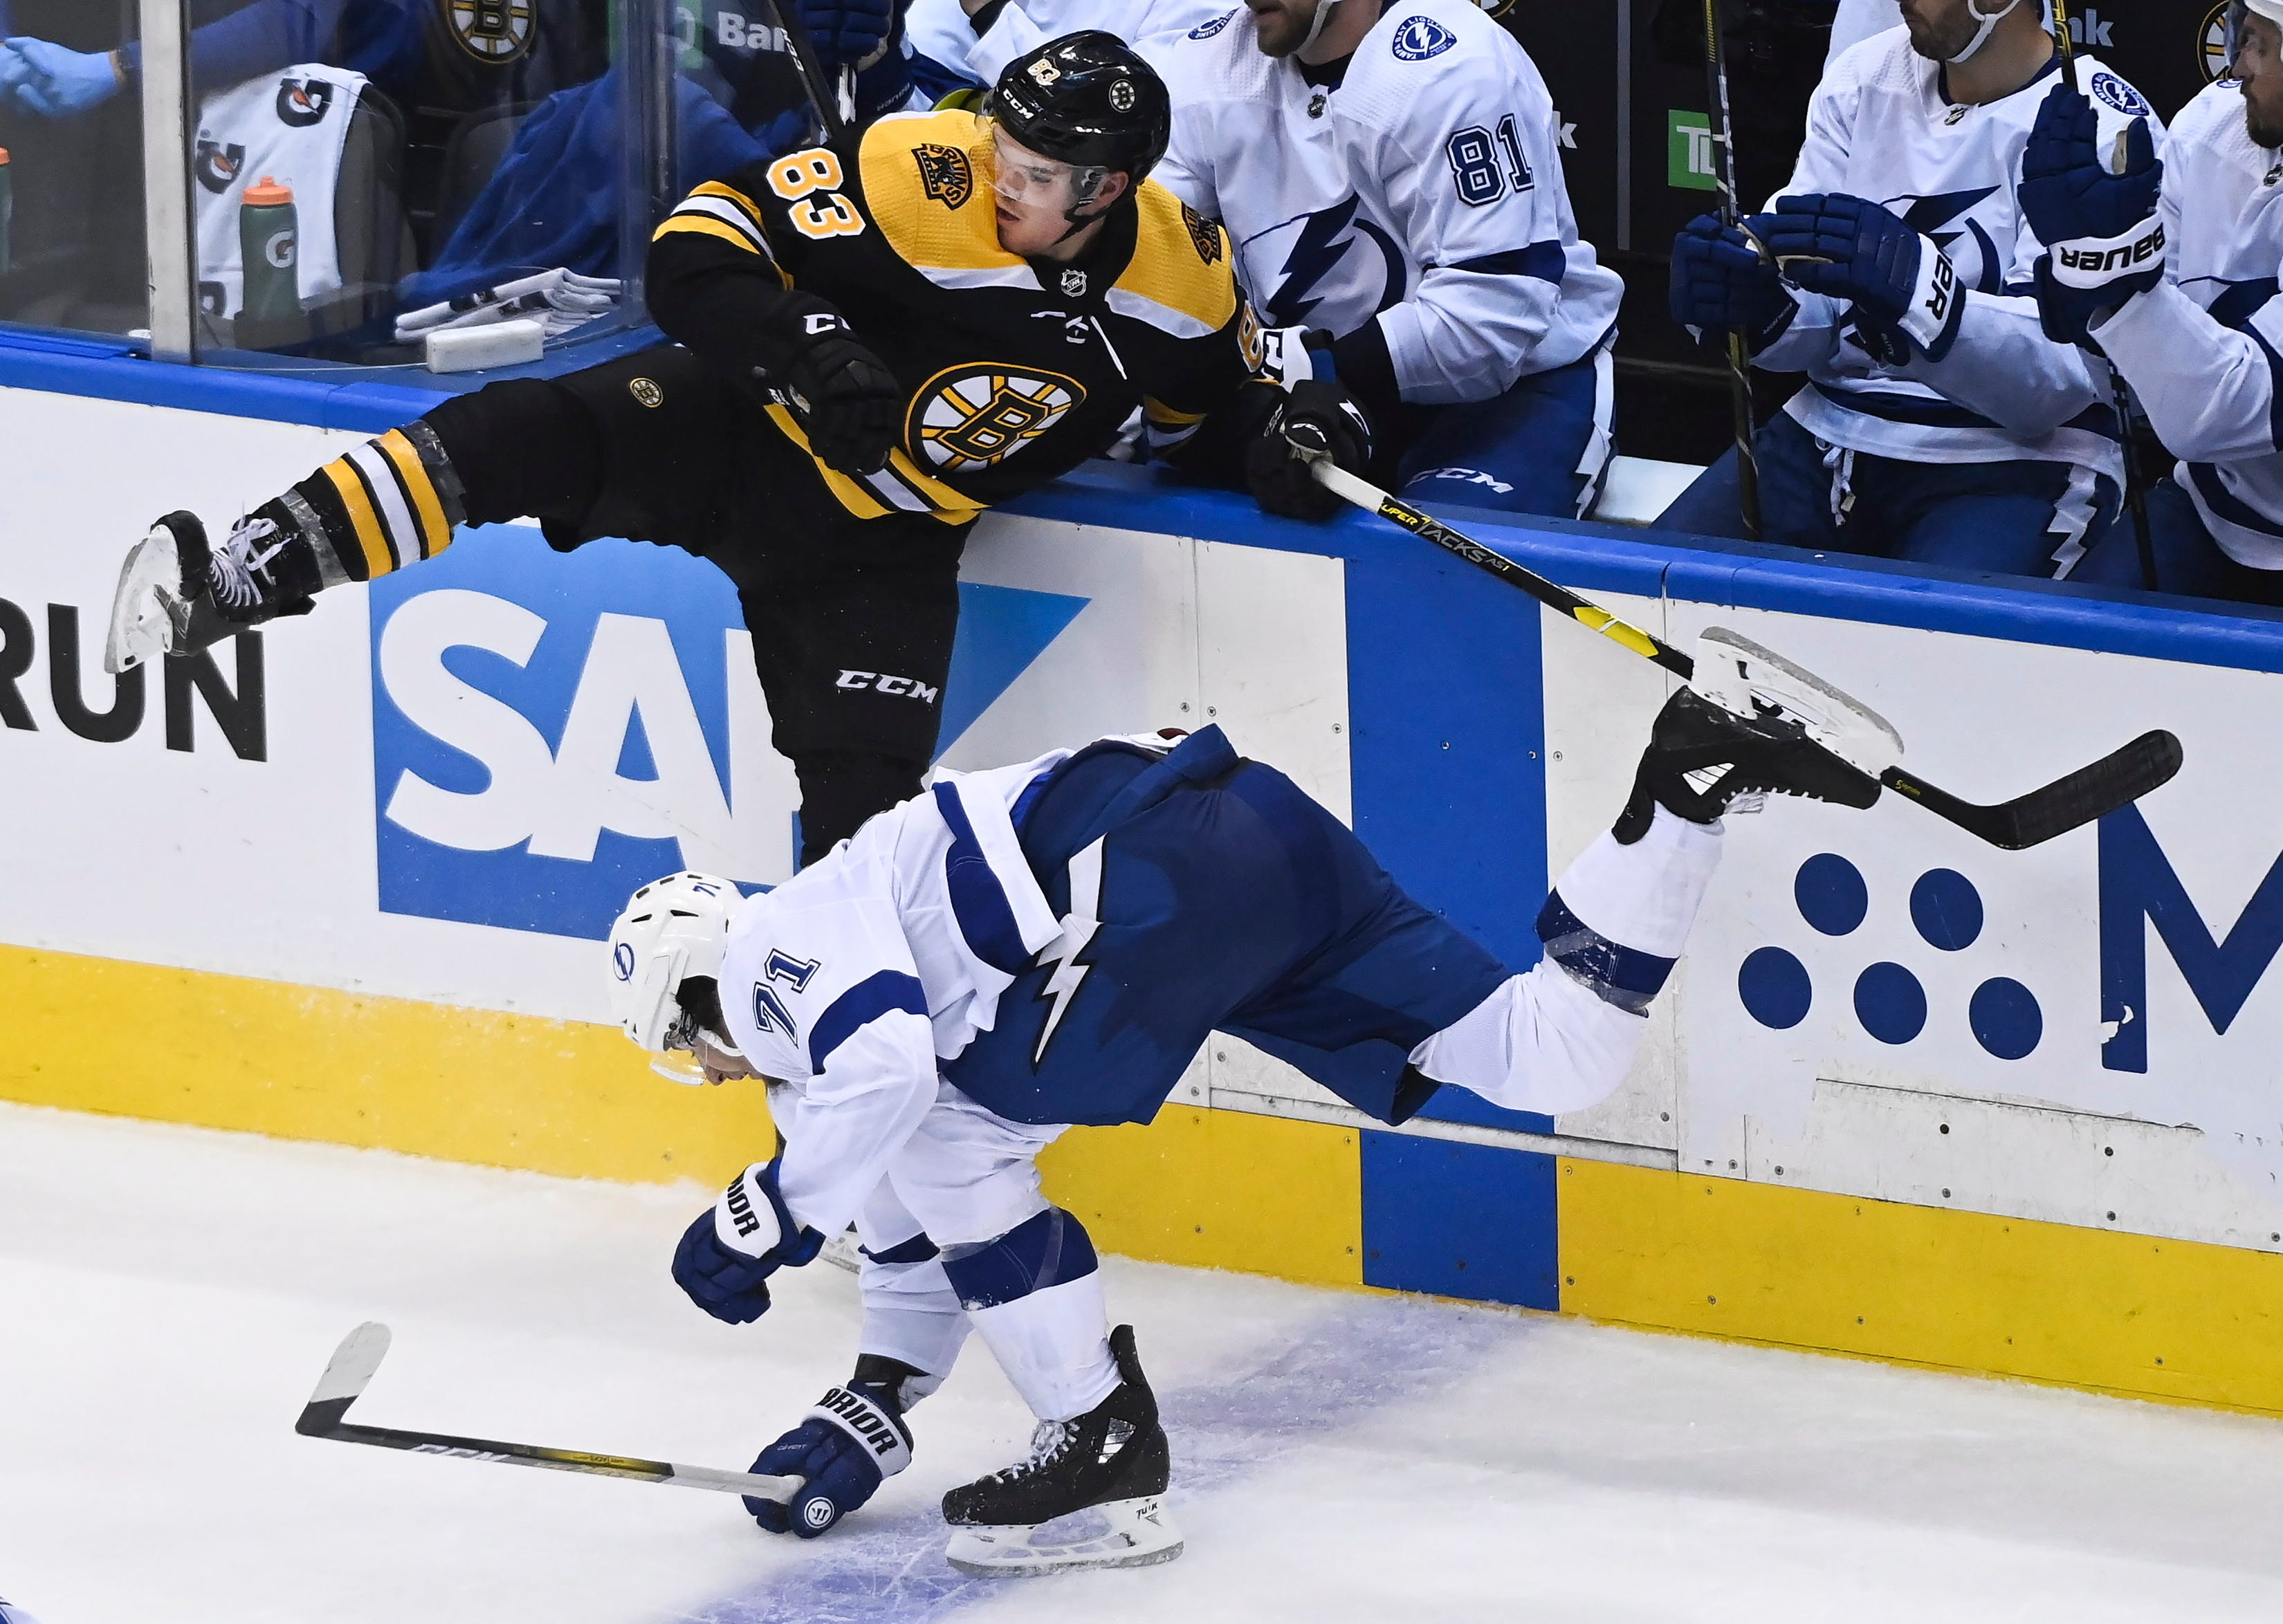 Wednesday S Nhl Playoffs Lightning Beat Bruins 3 2 Improve To 2 0 In Seeding Round